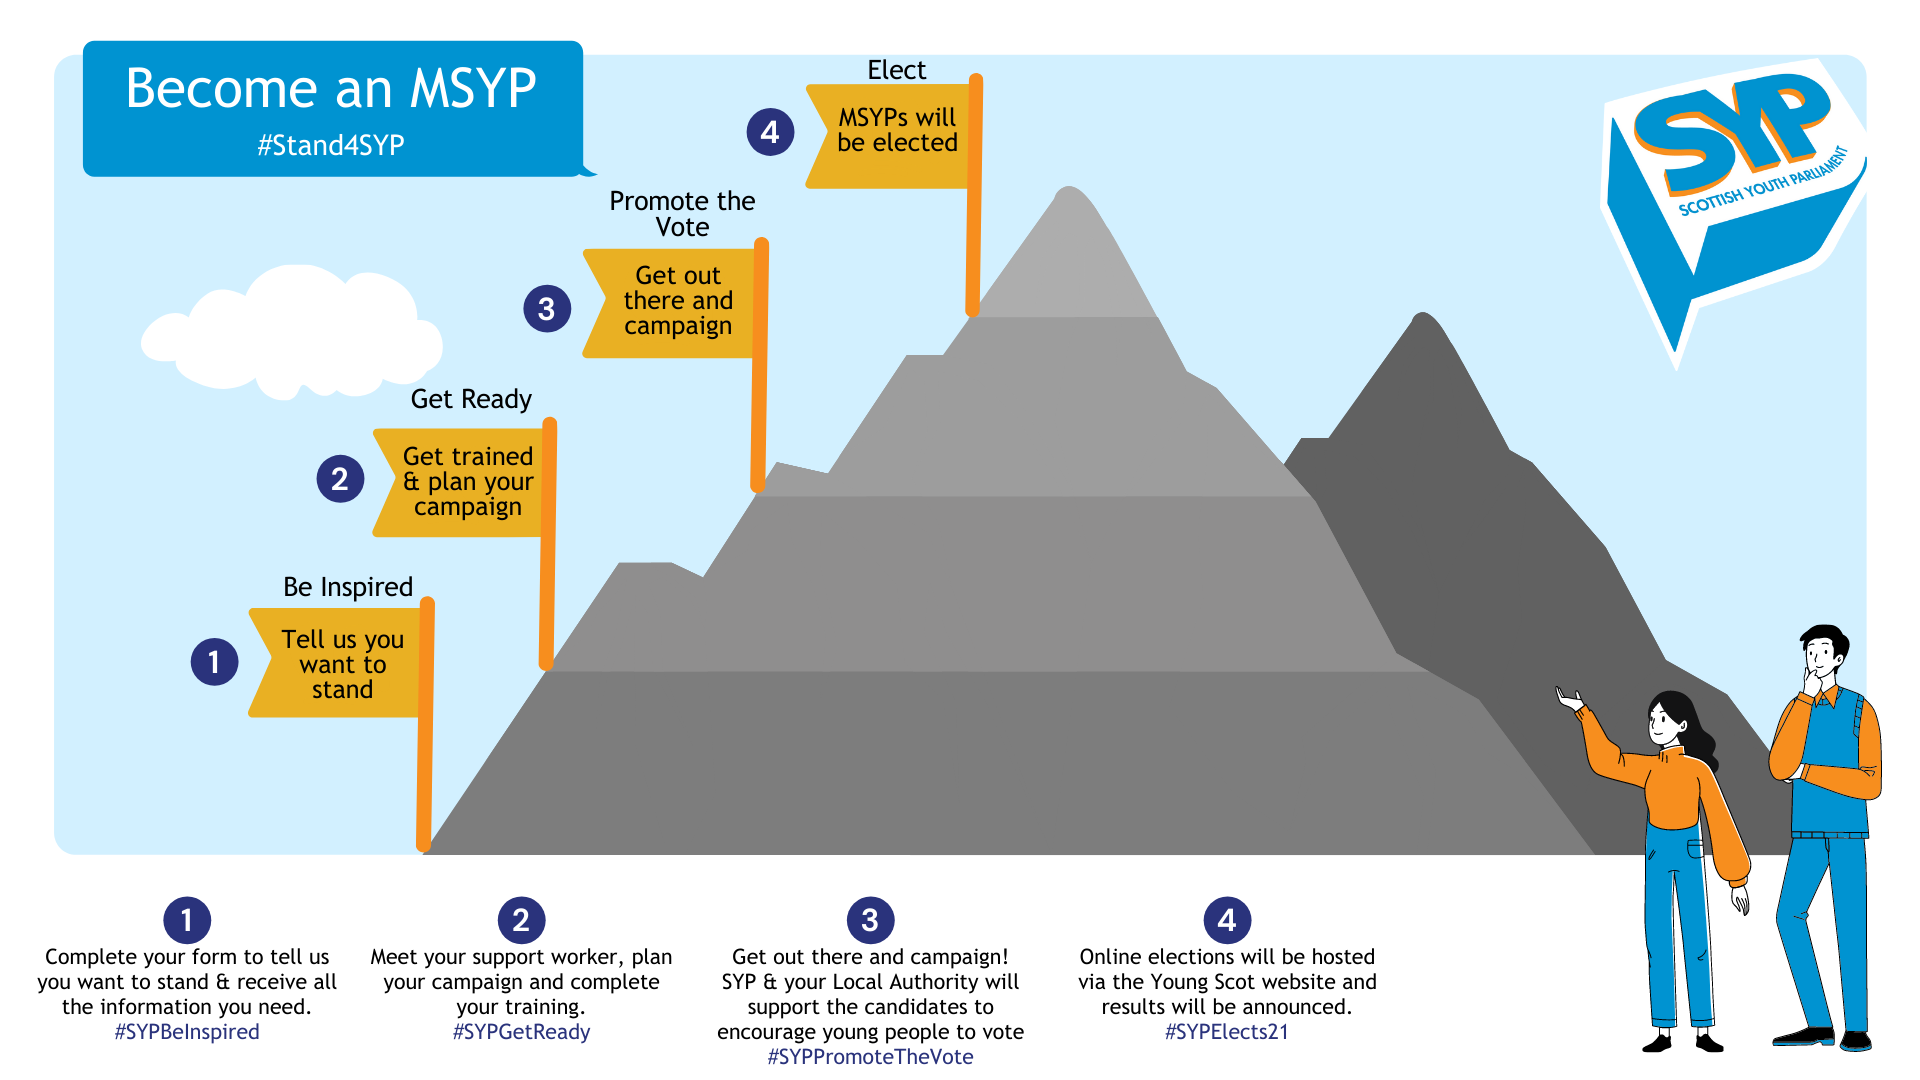 Blue background with clouds, timeline graphic with an image of a grey mountain and two people looking at it. On the mountain there is four orange flags showing each of the stages of becoming an MSYP - Be inspired, Get Ready, Promote the Vote, Elect.